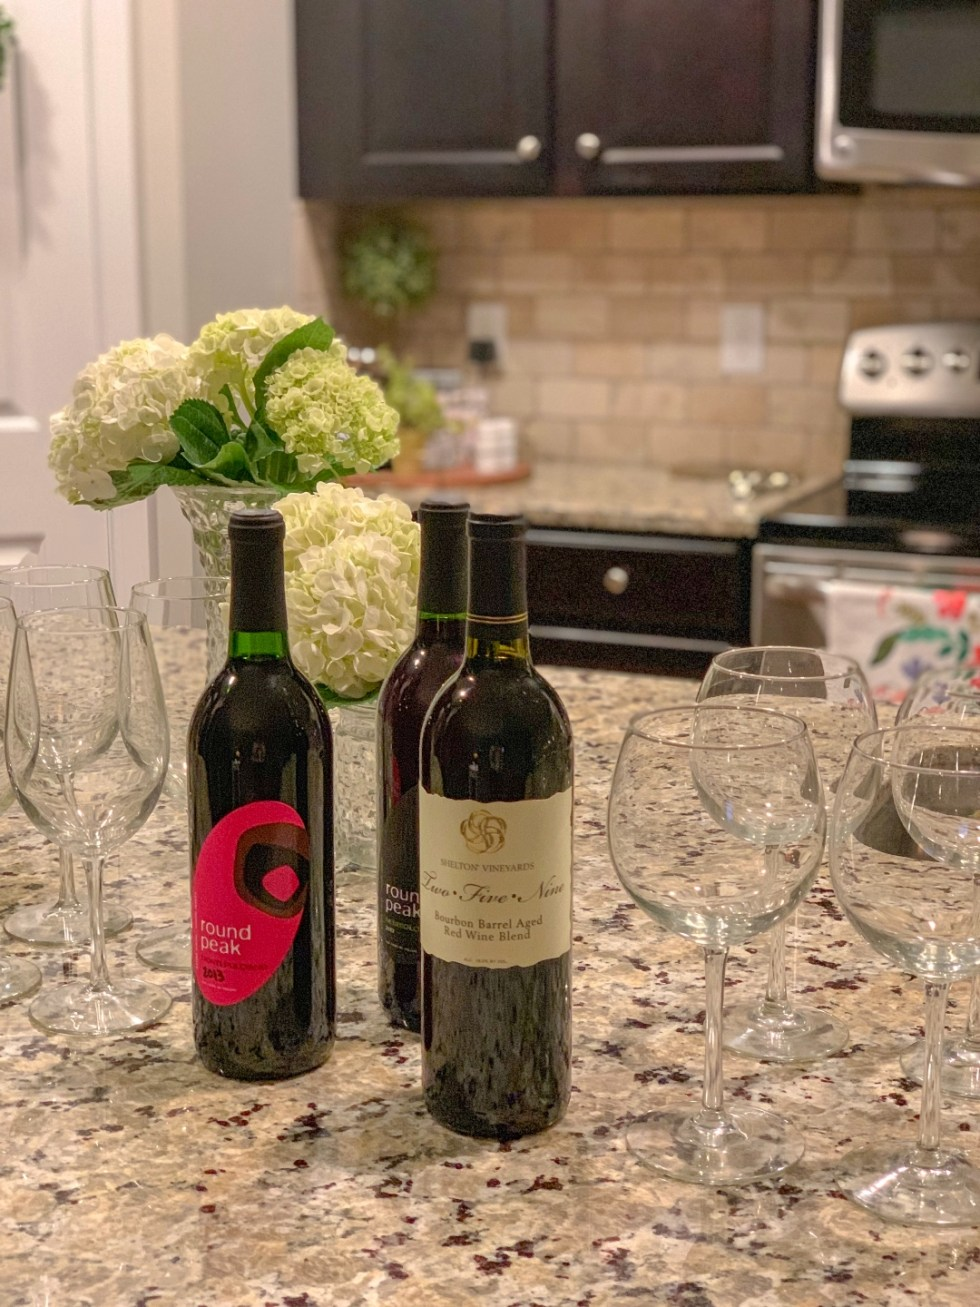 5 Tips to Host Your Own Wine Tasting Party with NC Wines - I'm Fixin' To - @mbg0112 | How to Host your Own Wine Tasting Party with NC Wines, featured by top US lifestyle blog, I'm Fixin' To